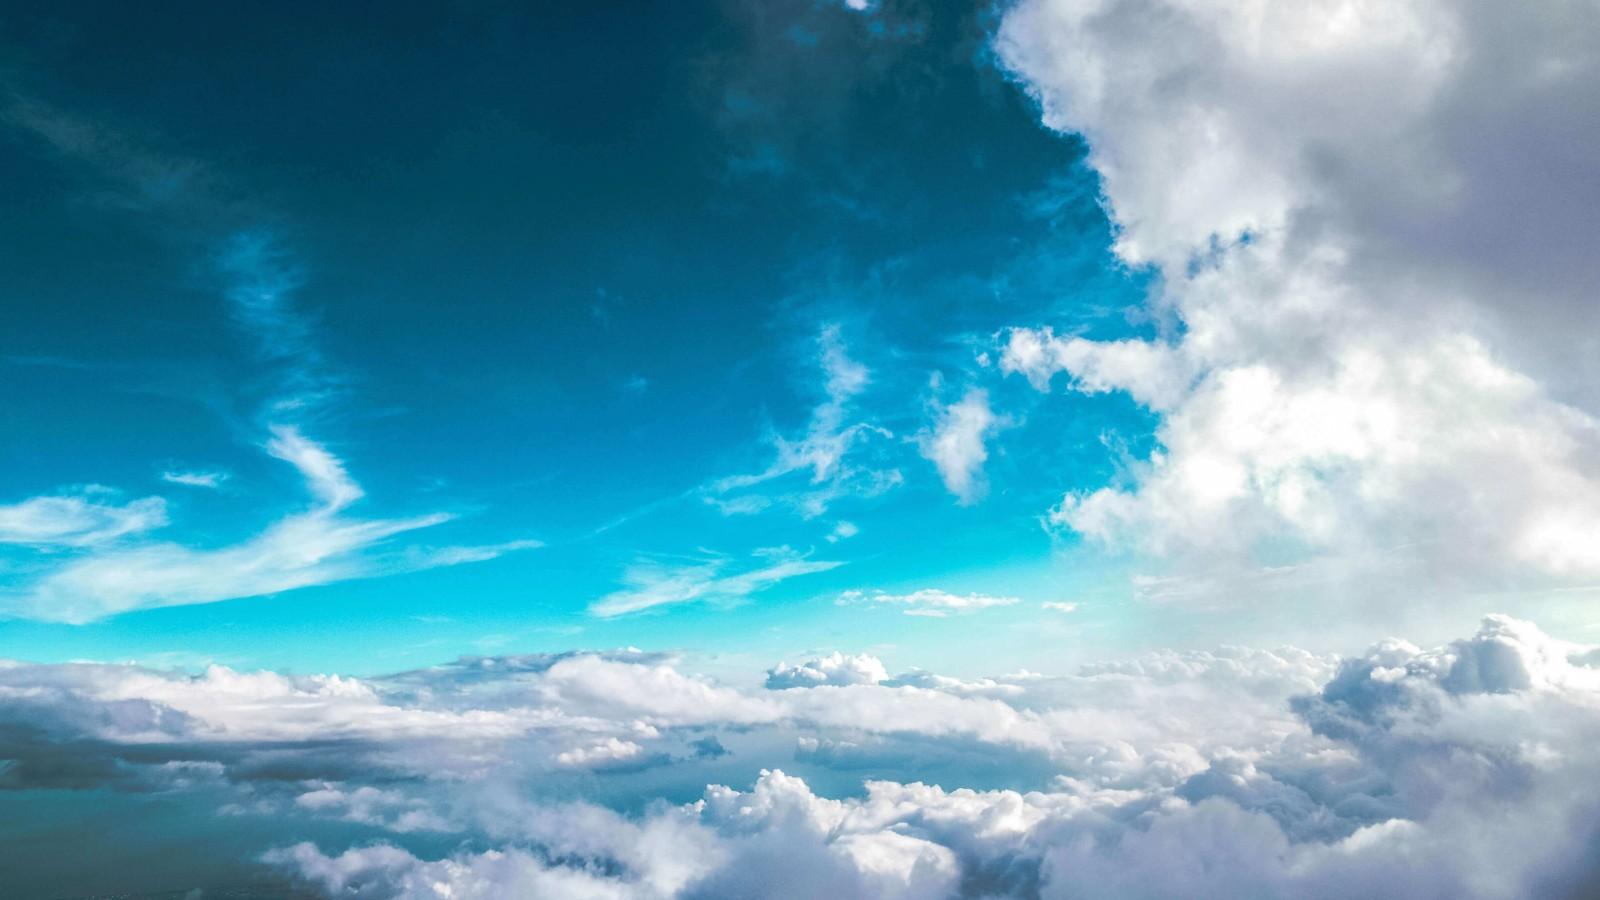 Cloudy Blue Sky Wallpaper for Desktop 1600x900